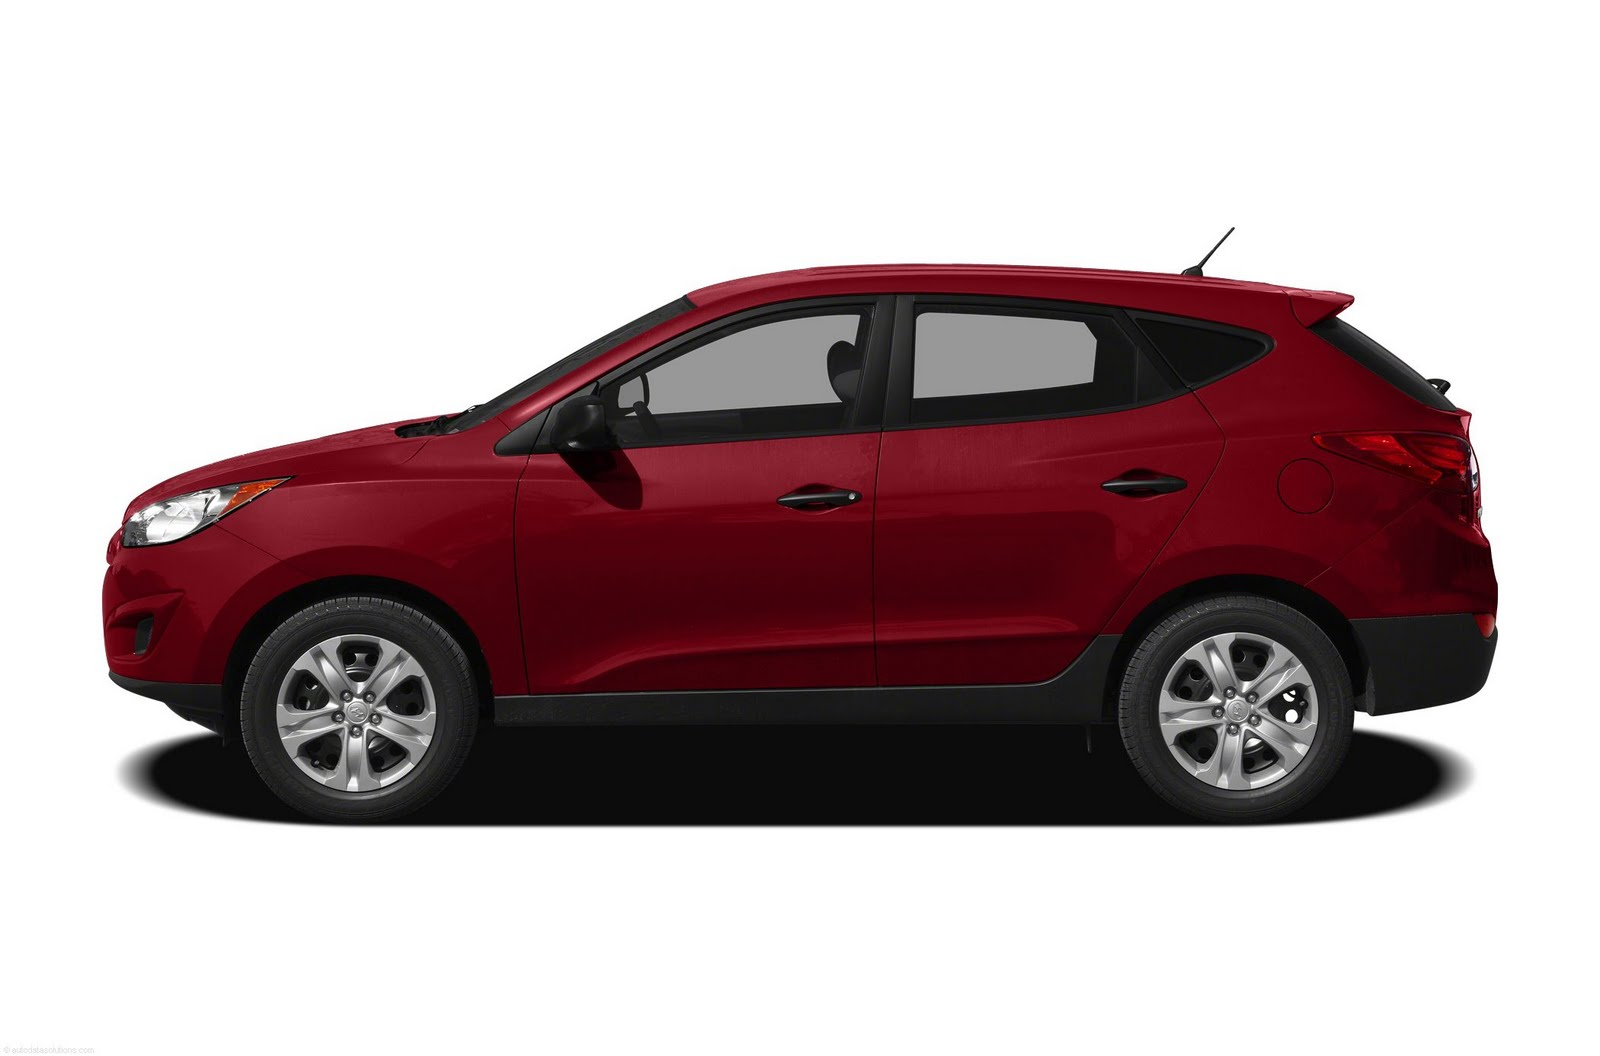 hyundai tucson 2011 most wanted cars. Black Bedroom Furniture Sets. Home Design Ideas